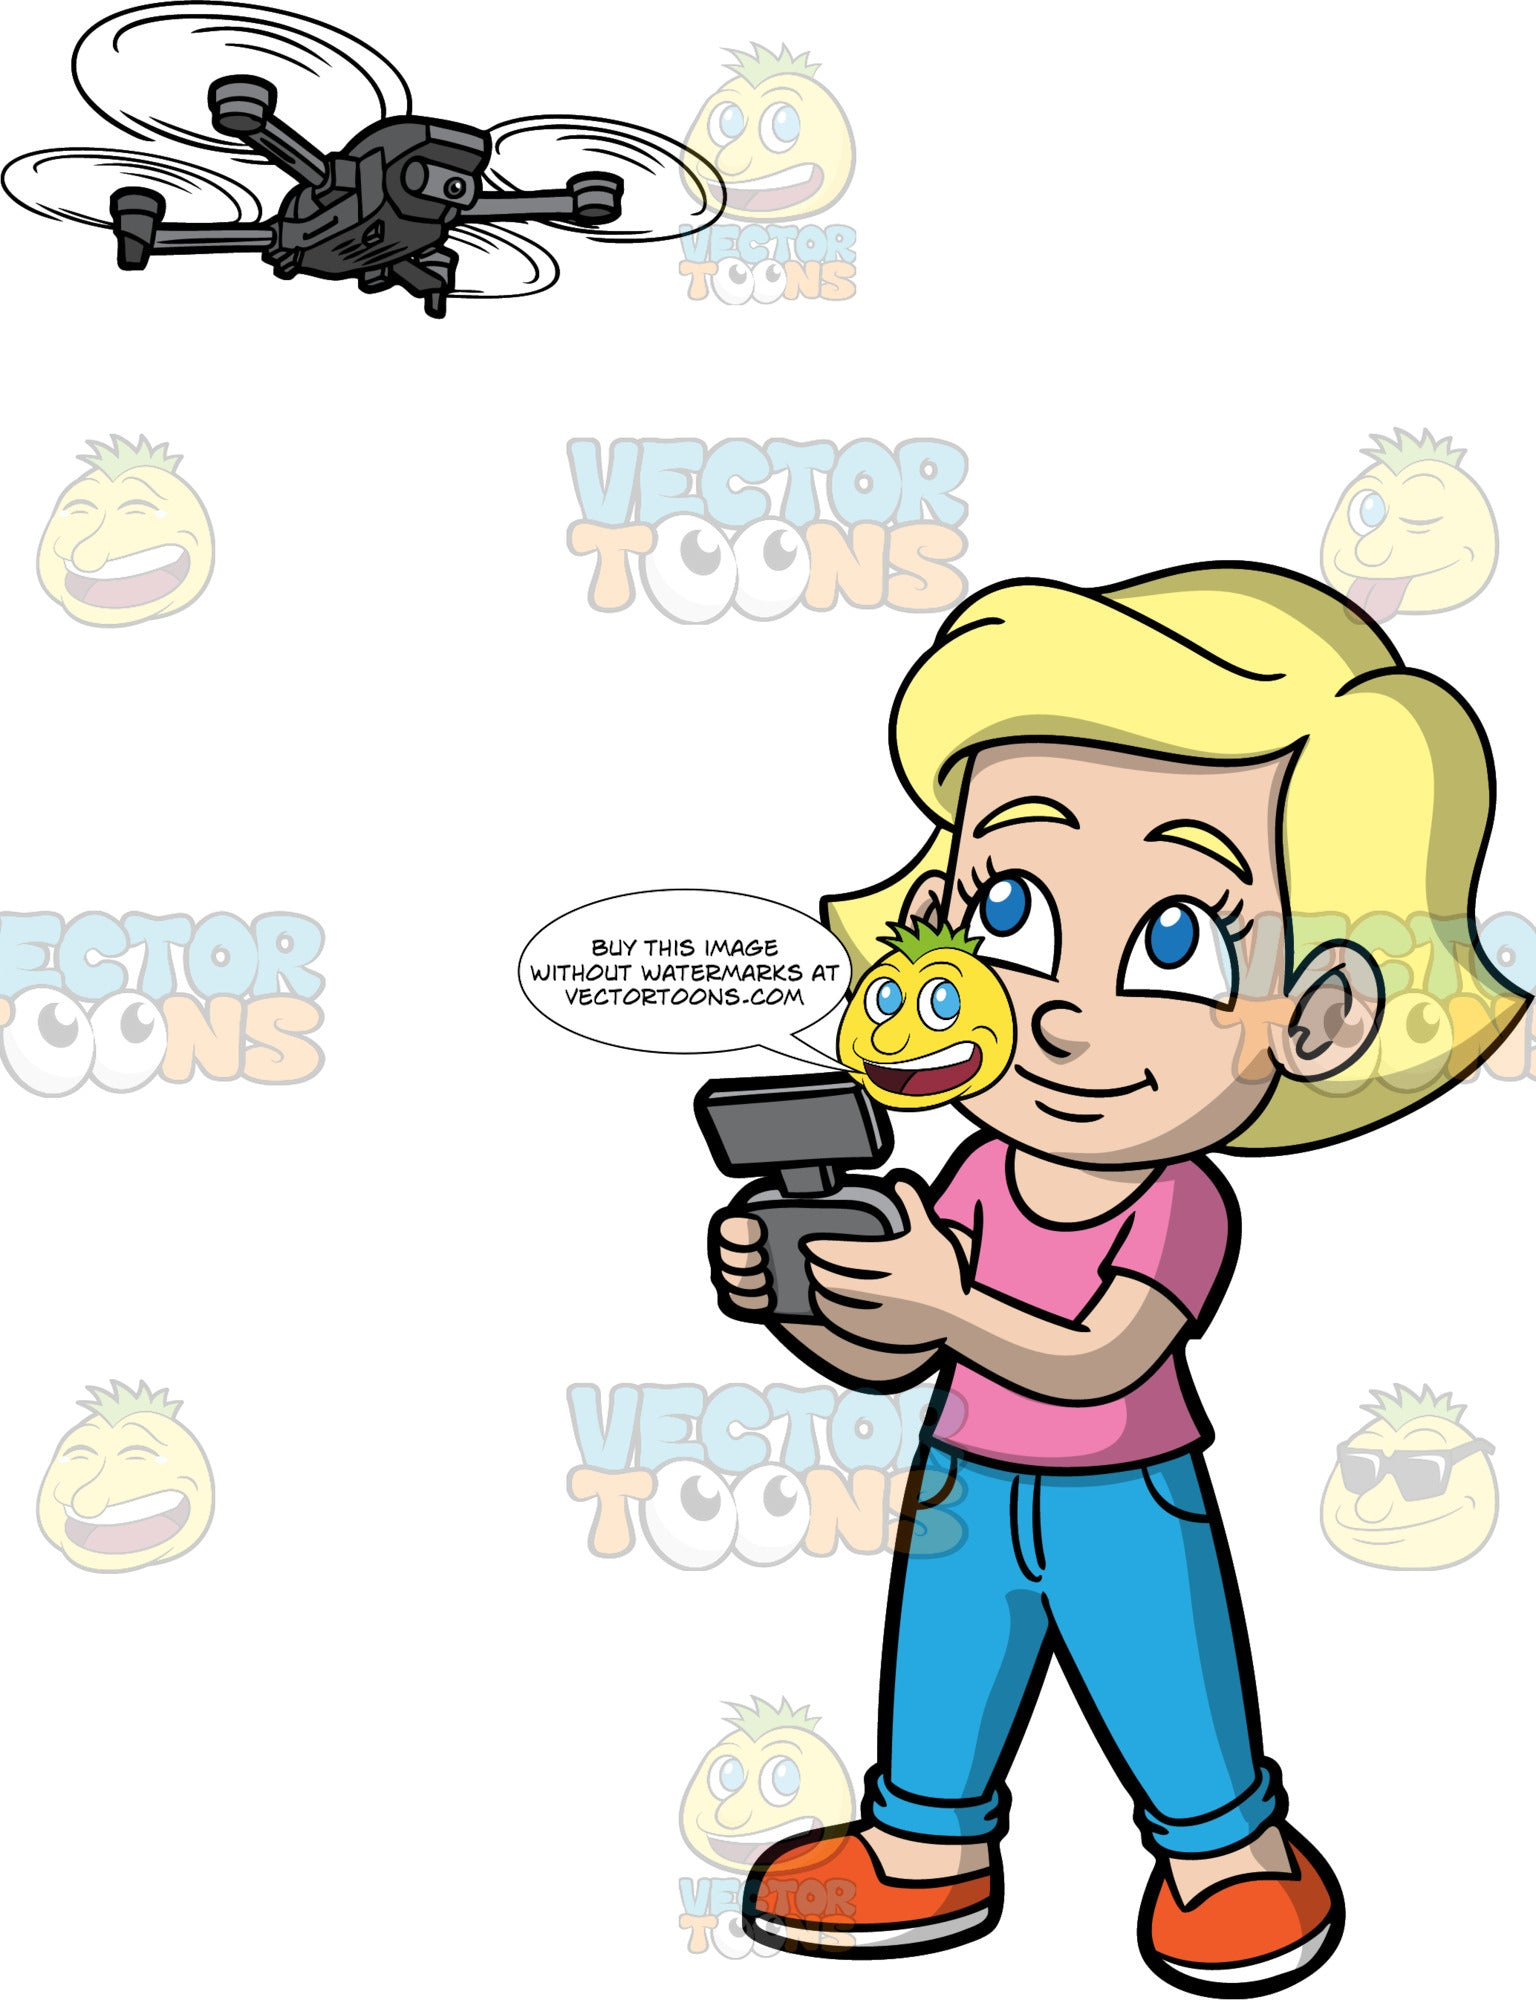 Young Mary Flying A Remote Controlled Drone. A young blonde girl wearing blue jeans, a pink t-shirt, and orange shoes, using a remote to control a flying drone